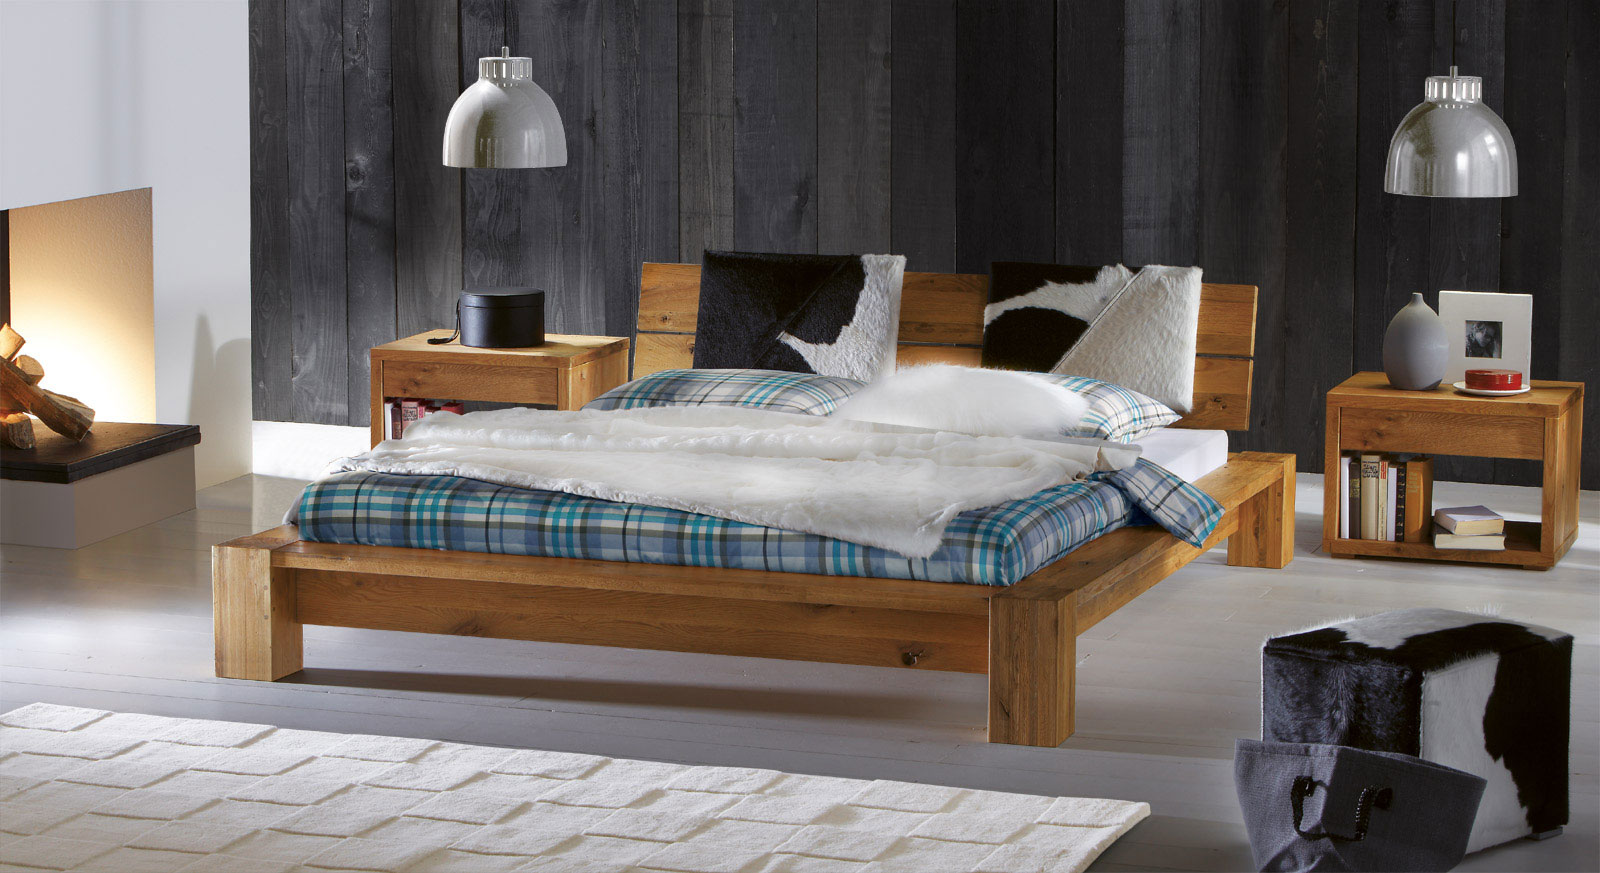 niedriges bettgestell best mit niedrigem kopfteil genial bett mit kopfteil kopfteil diy holz. Black Bedroom Furniture Sets. Home Design Ideas